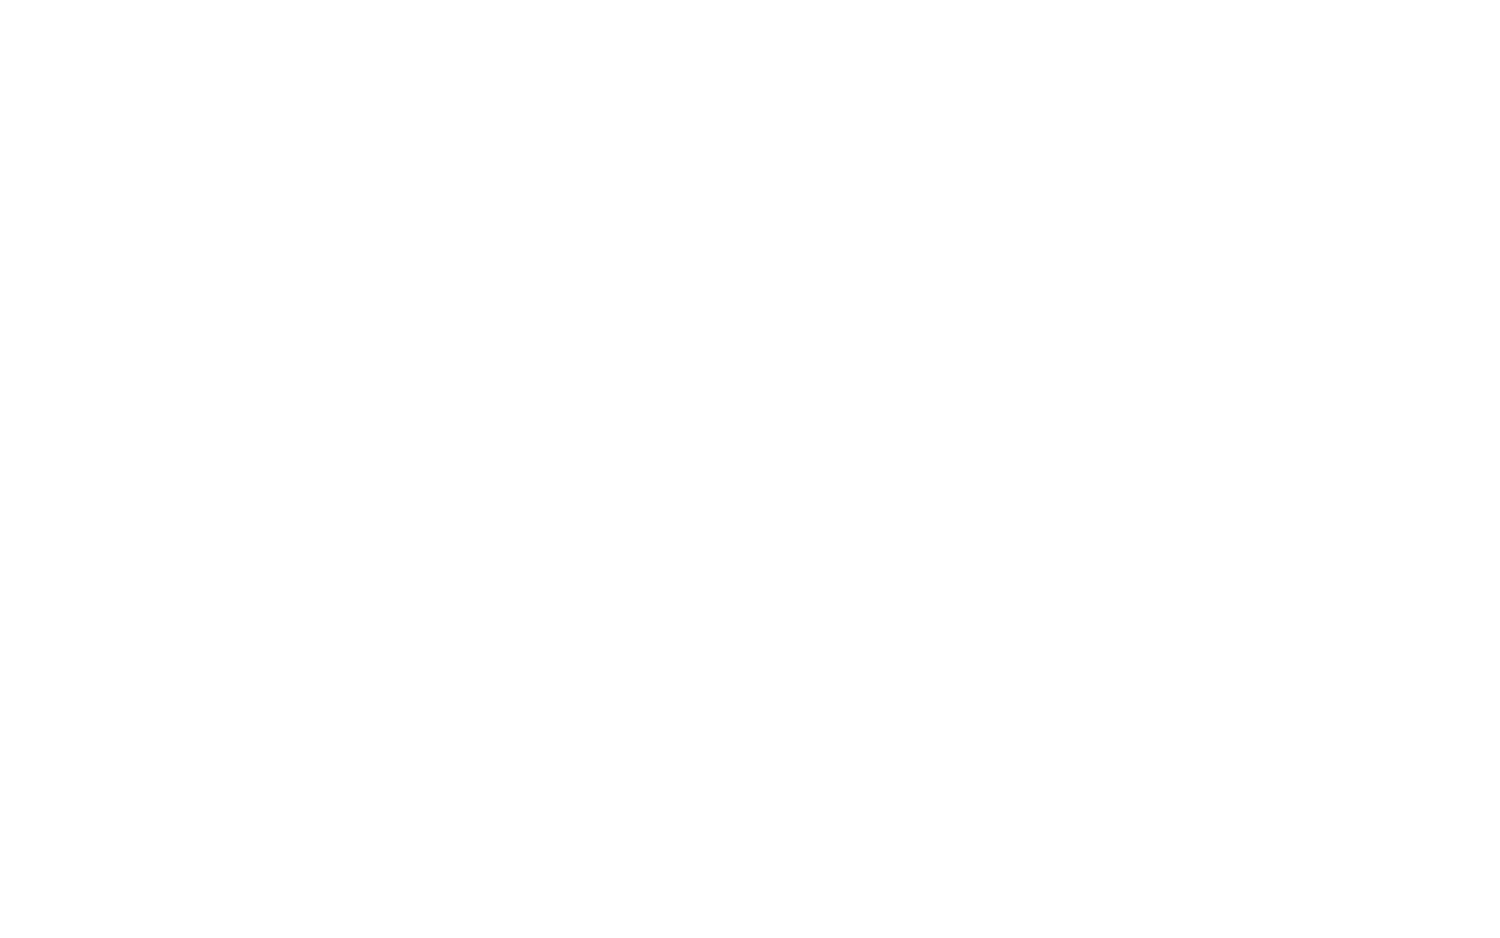 St Andrews Africa Summit